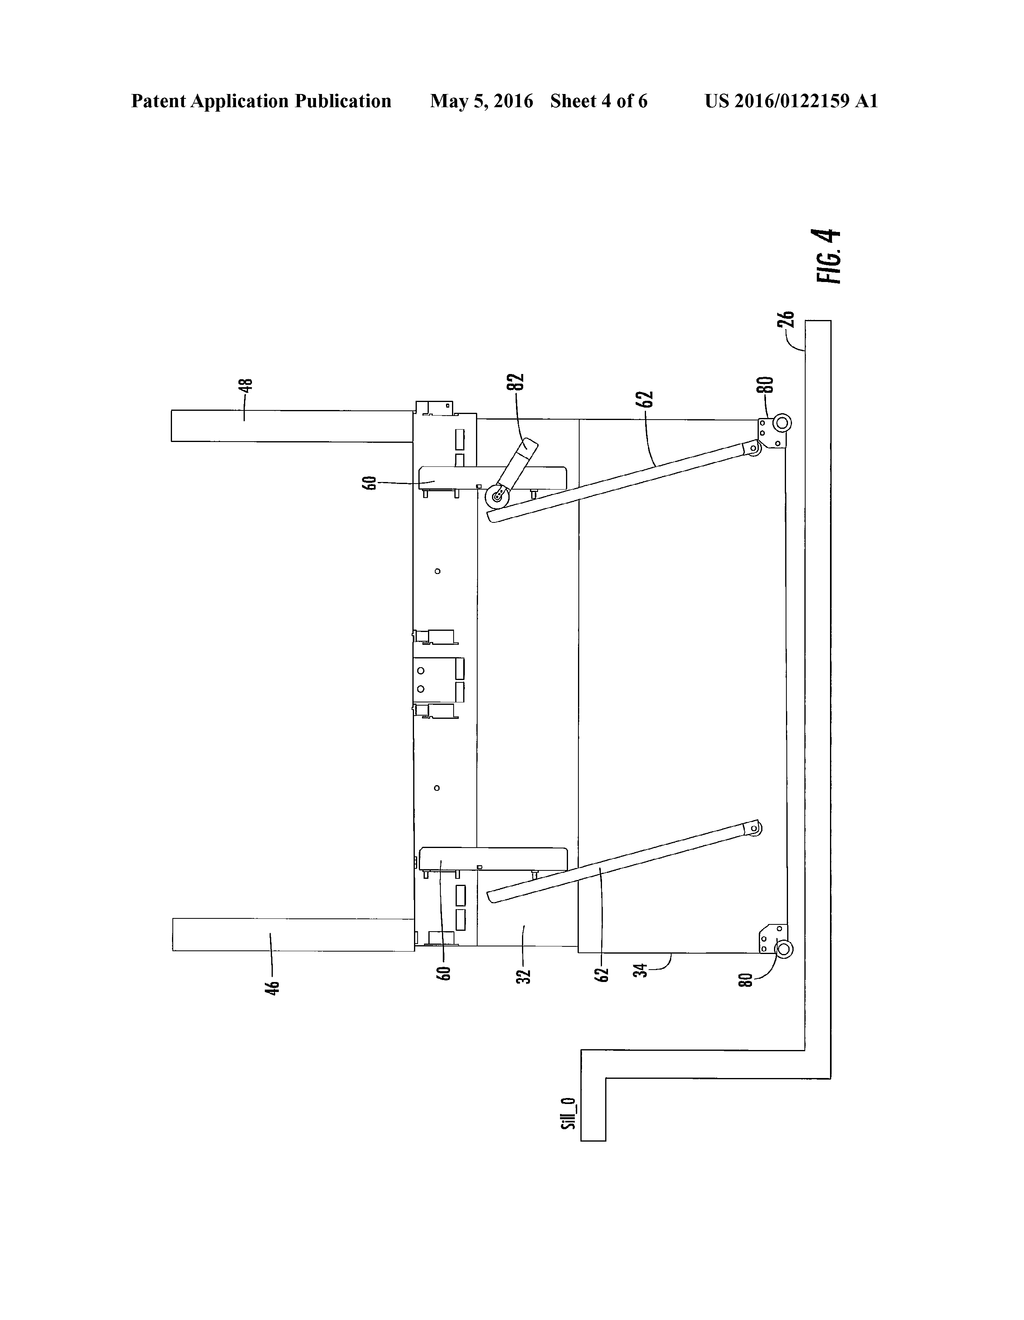 Retractable Toe Guard Assembly For An Elevator System Diagram Circuit Schematic And Image 05